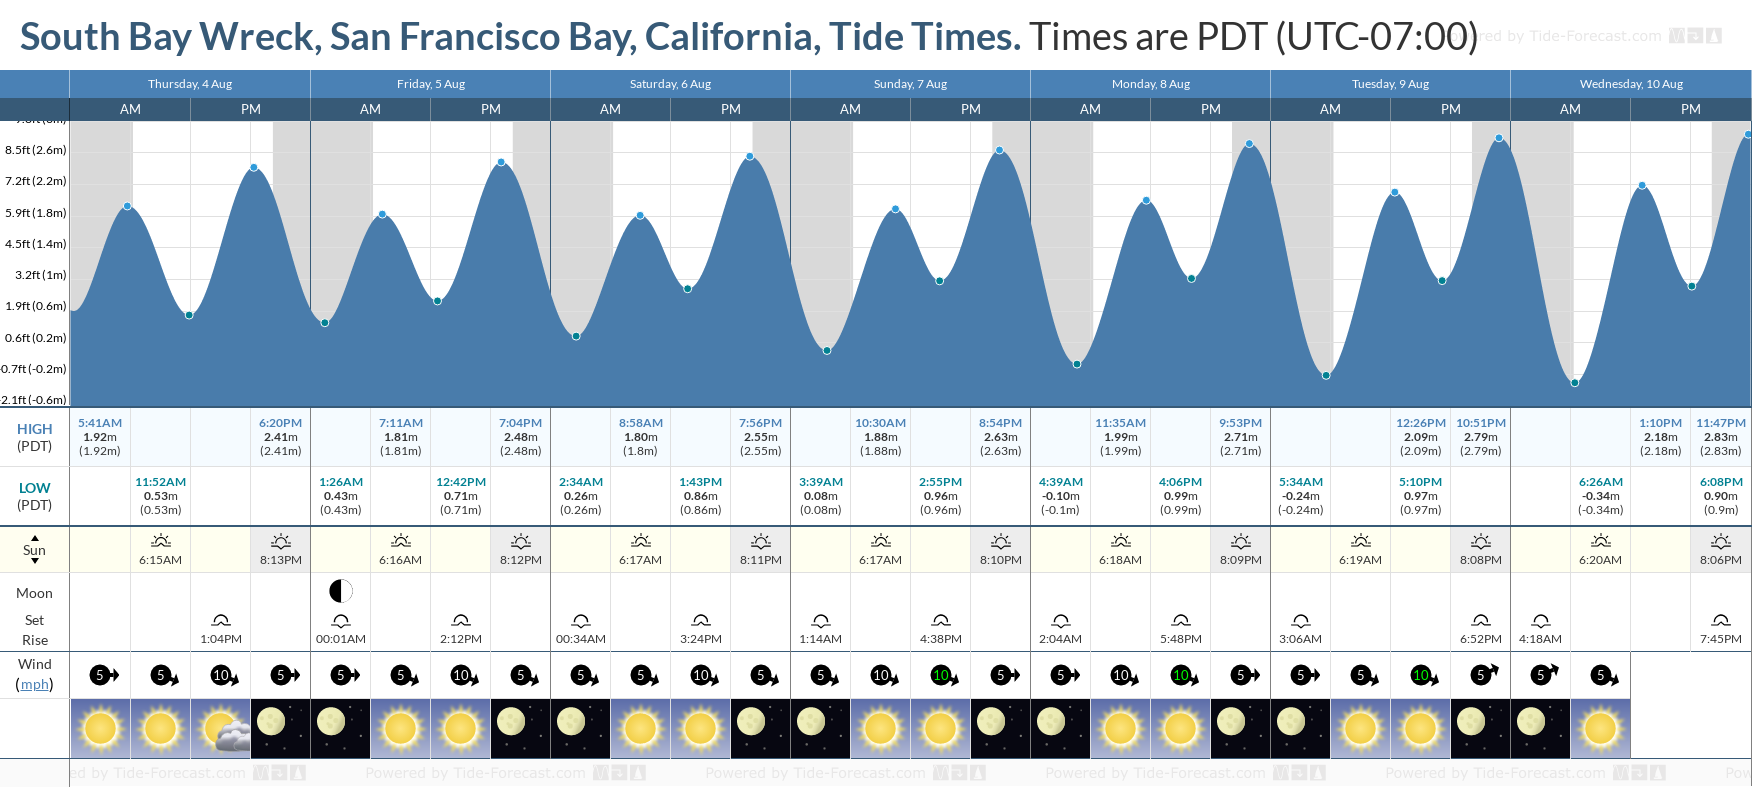 South Bay Wreck, San Francisco Bay, California Tide Chart including high and low tide tide times for the next 7 days